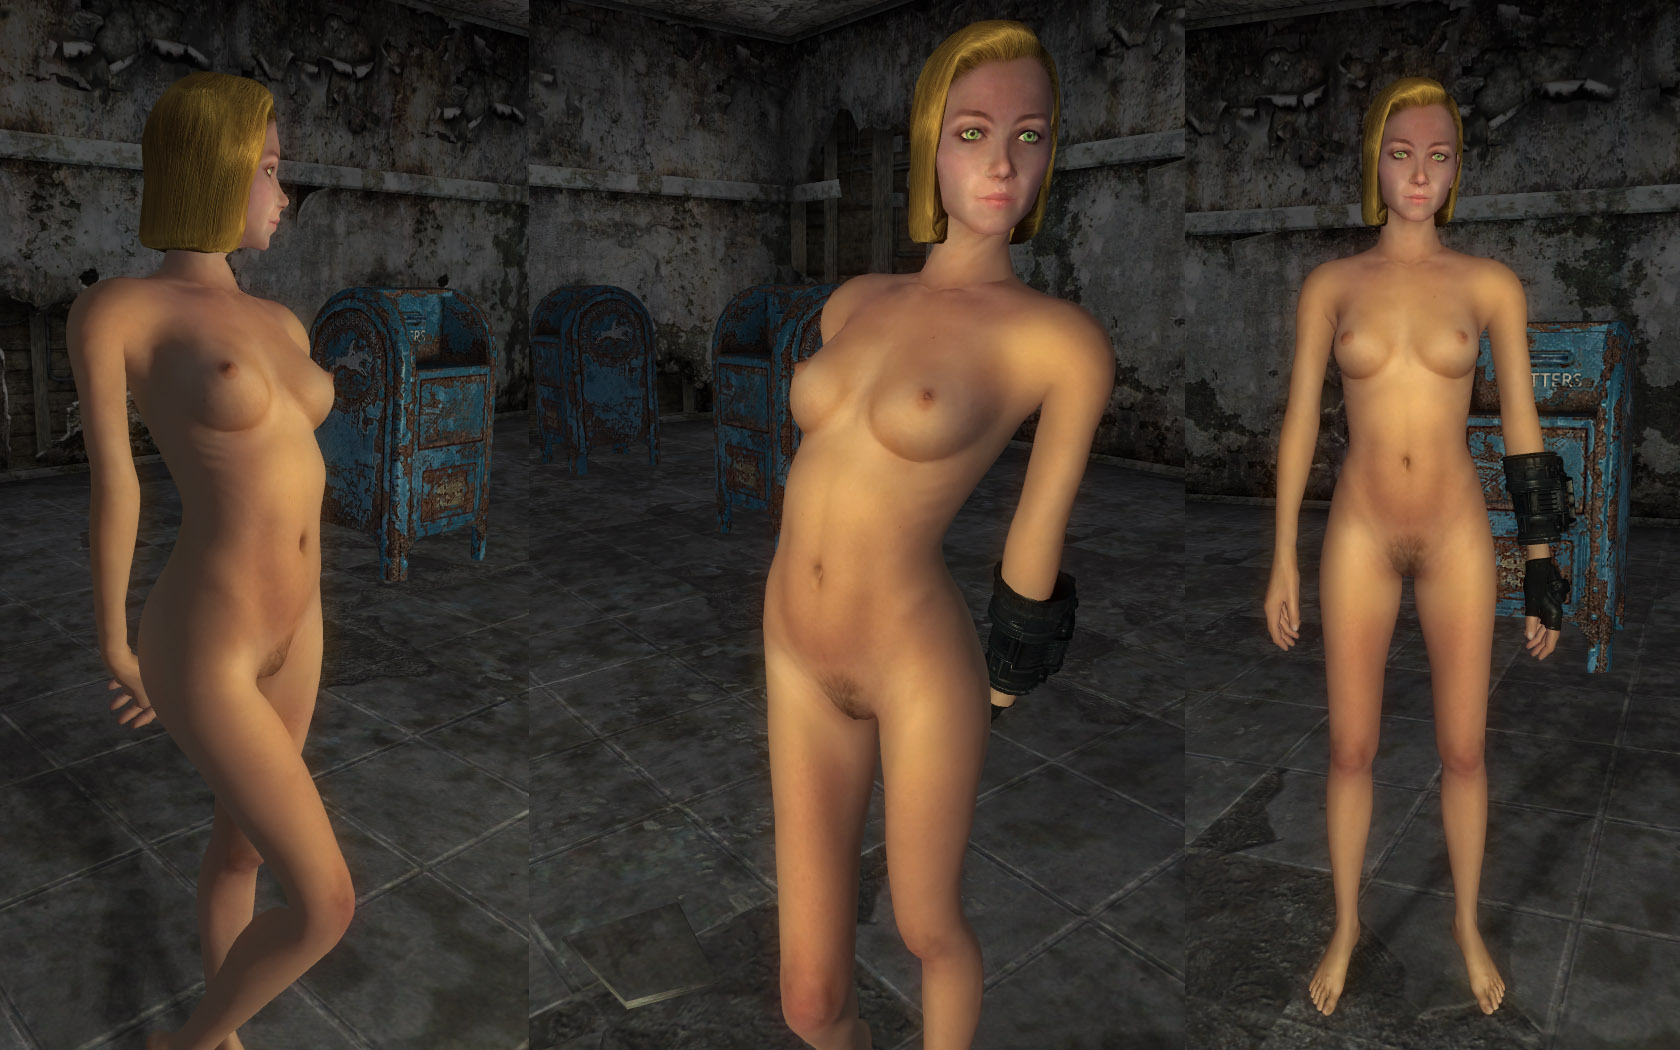 Fallout 3 nude girl porncraft photo